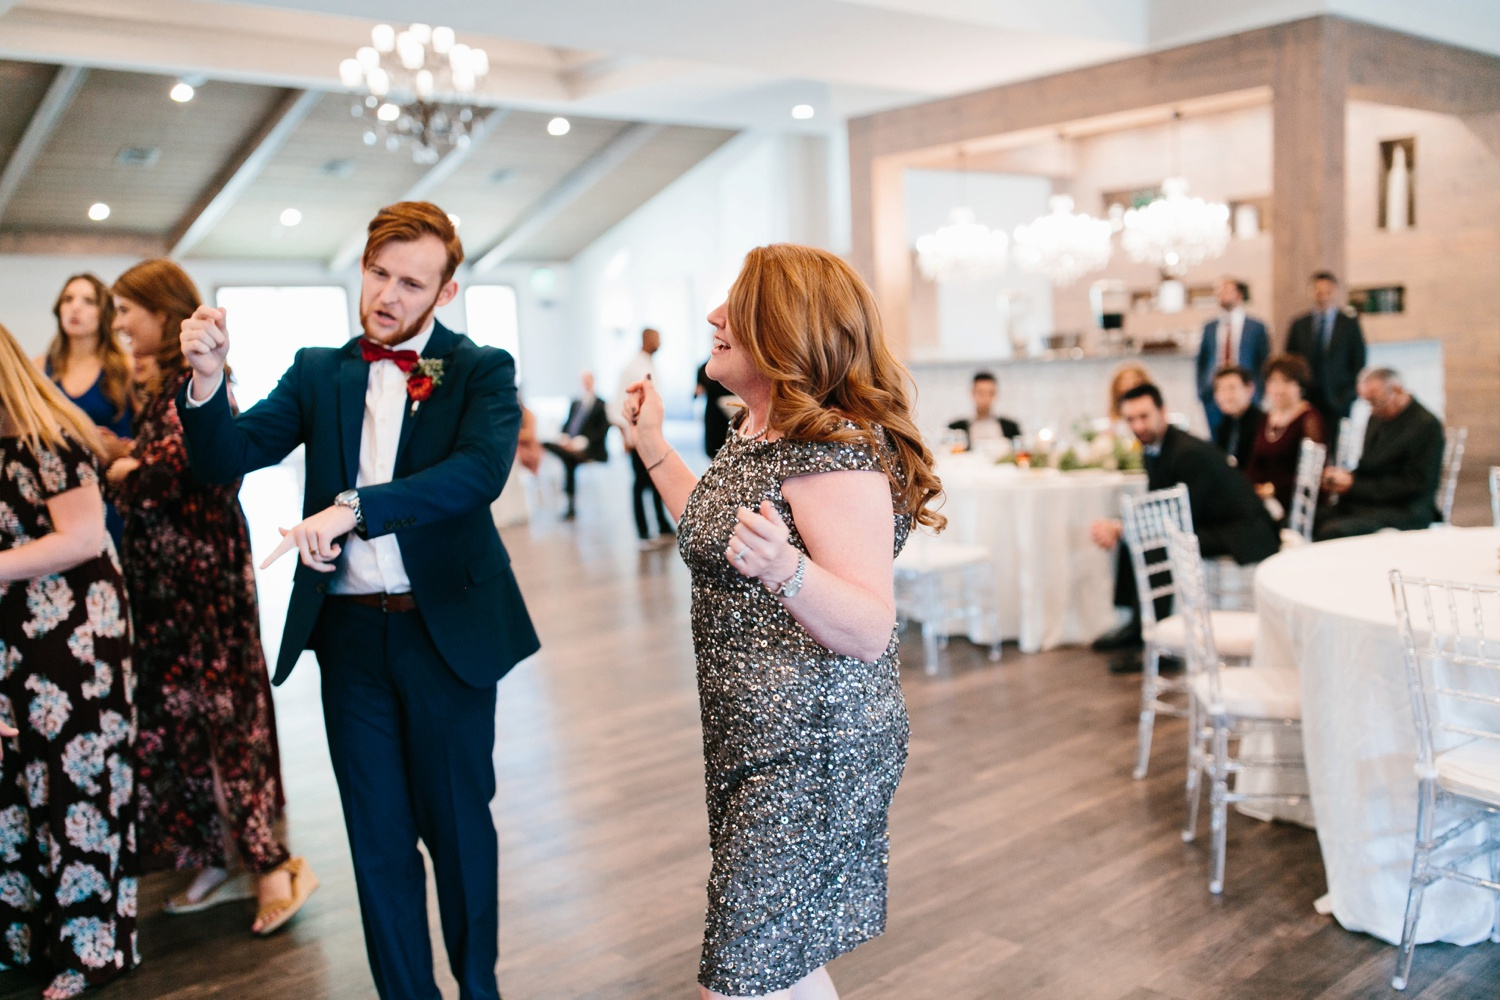 Grant + Lysette | a vibrant, deep burgundy and navy, and mixed metals wedding at Hidden Pines Chapel by North Texas Wedding Photographer Rachel Meagan Photography 187